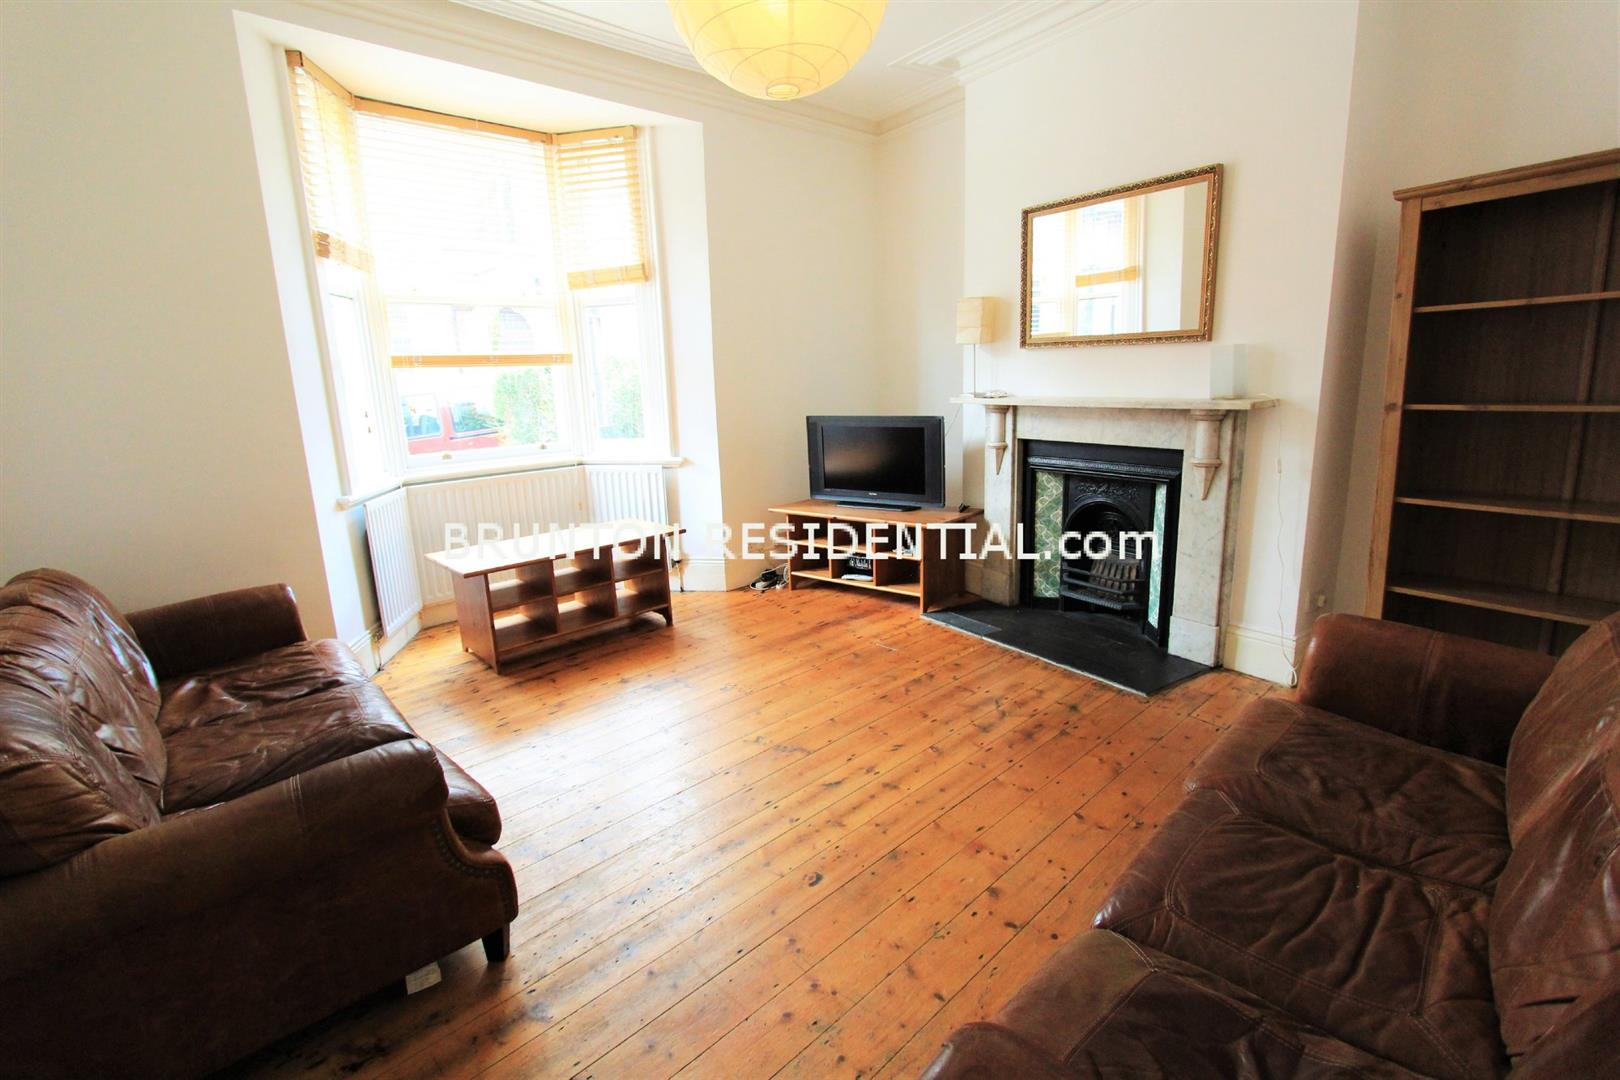 6 bed terraced house to rent in Spital Tongues, NE2 4AH, NE2